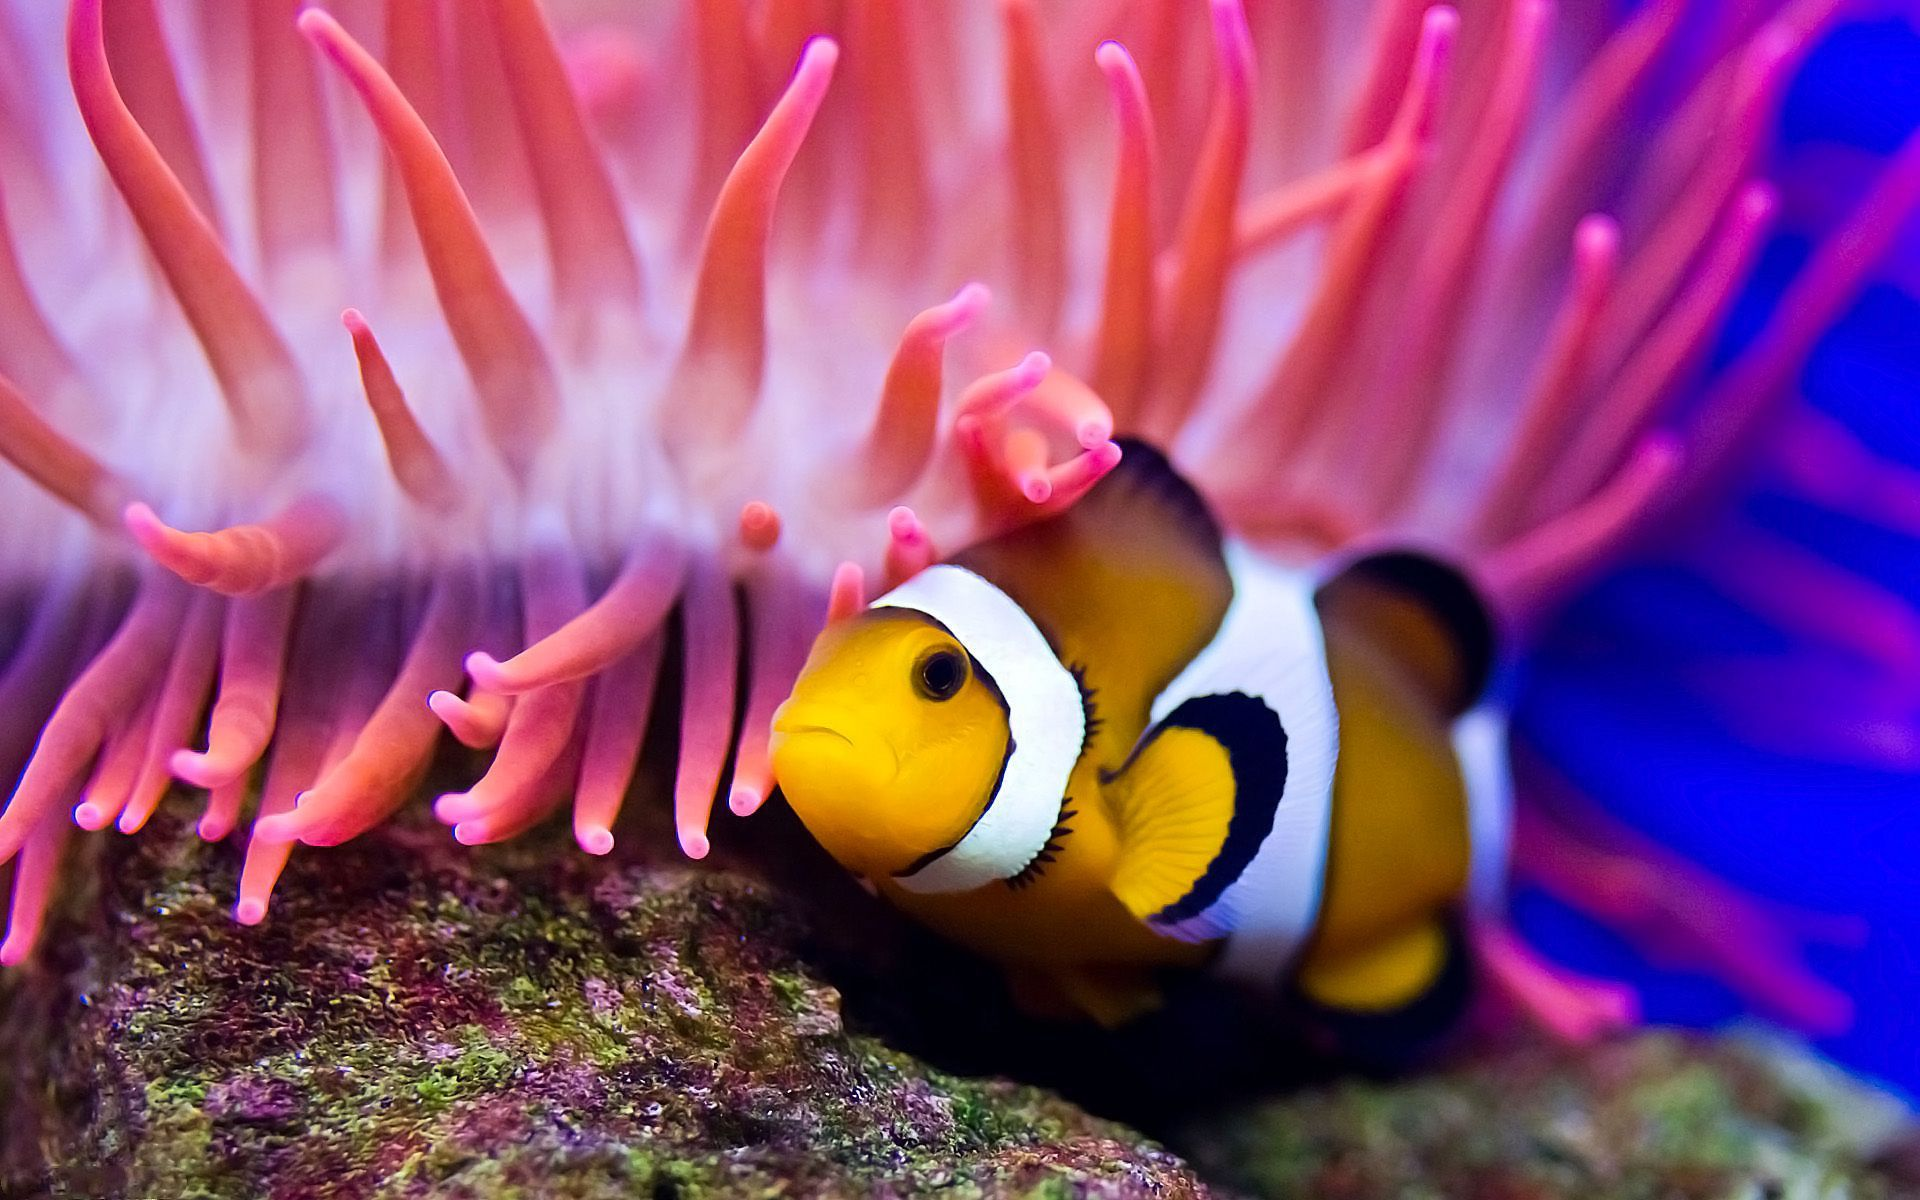 clown fish essay Unlike most editing & proofreading services, we edit for everything: grammar, spelling, punctuation, idea flow, sentence structure, & more get started now.